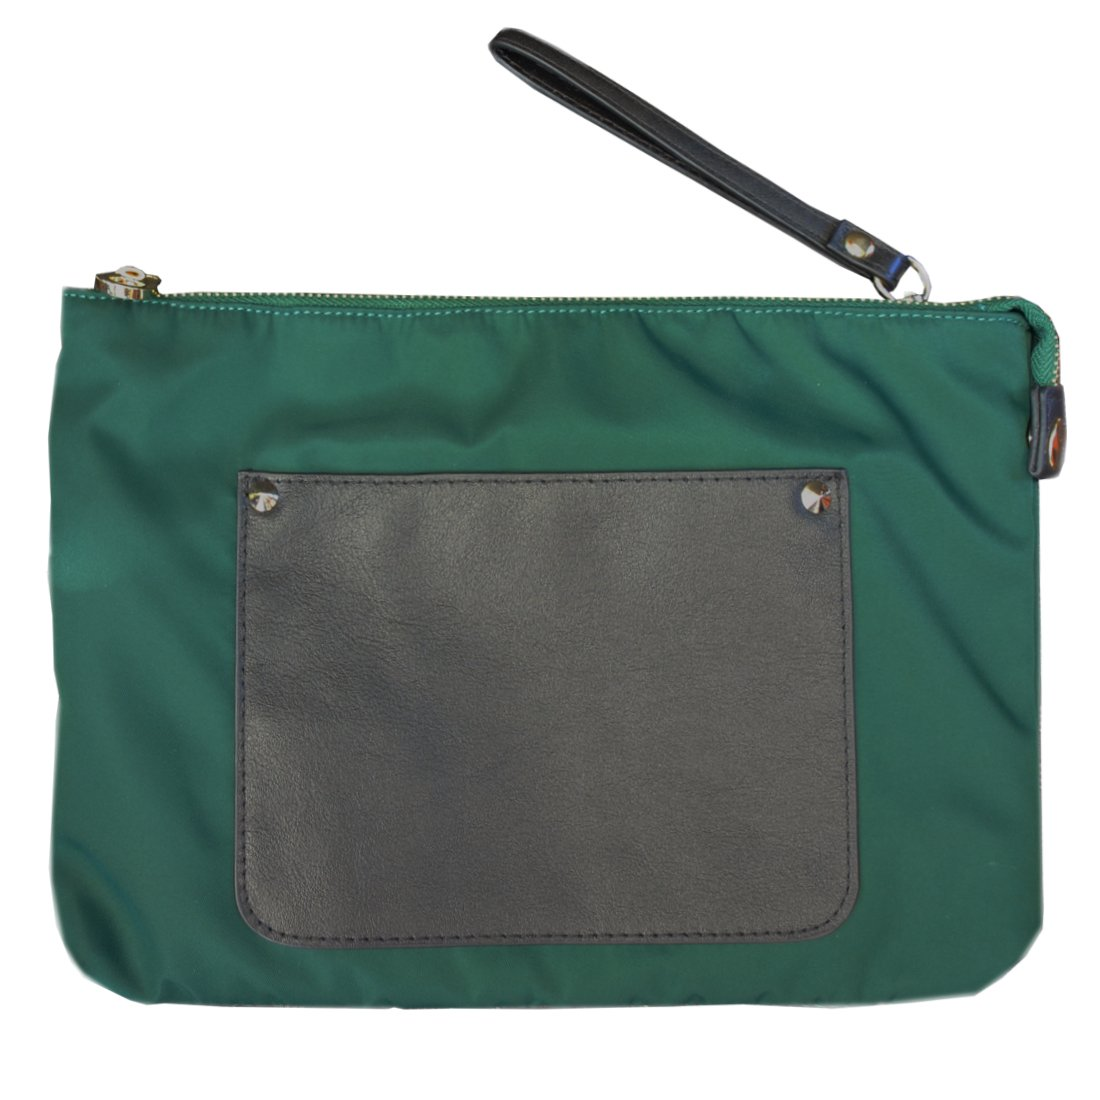 Fashion water-proof Travel/Business wristlet clutch crossbody bag Fits cell phone/ipad pro with shoulder and wrist strap for women/men - Green